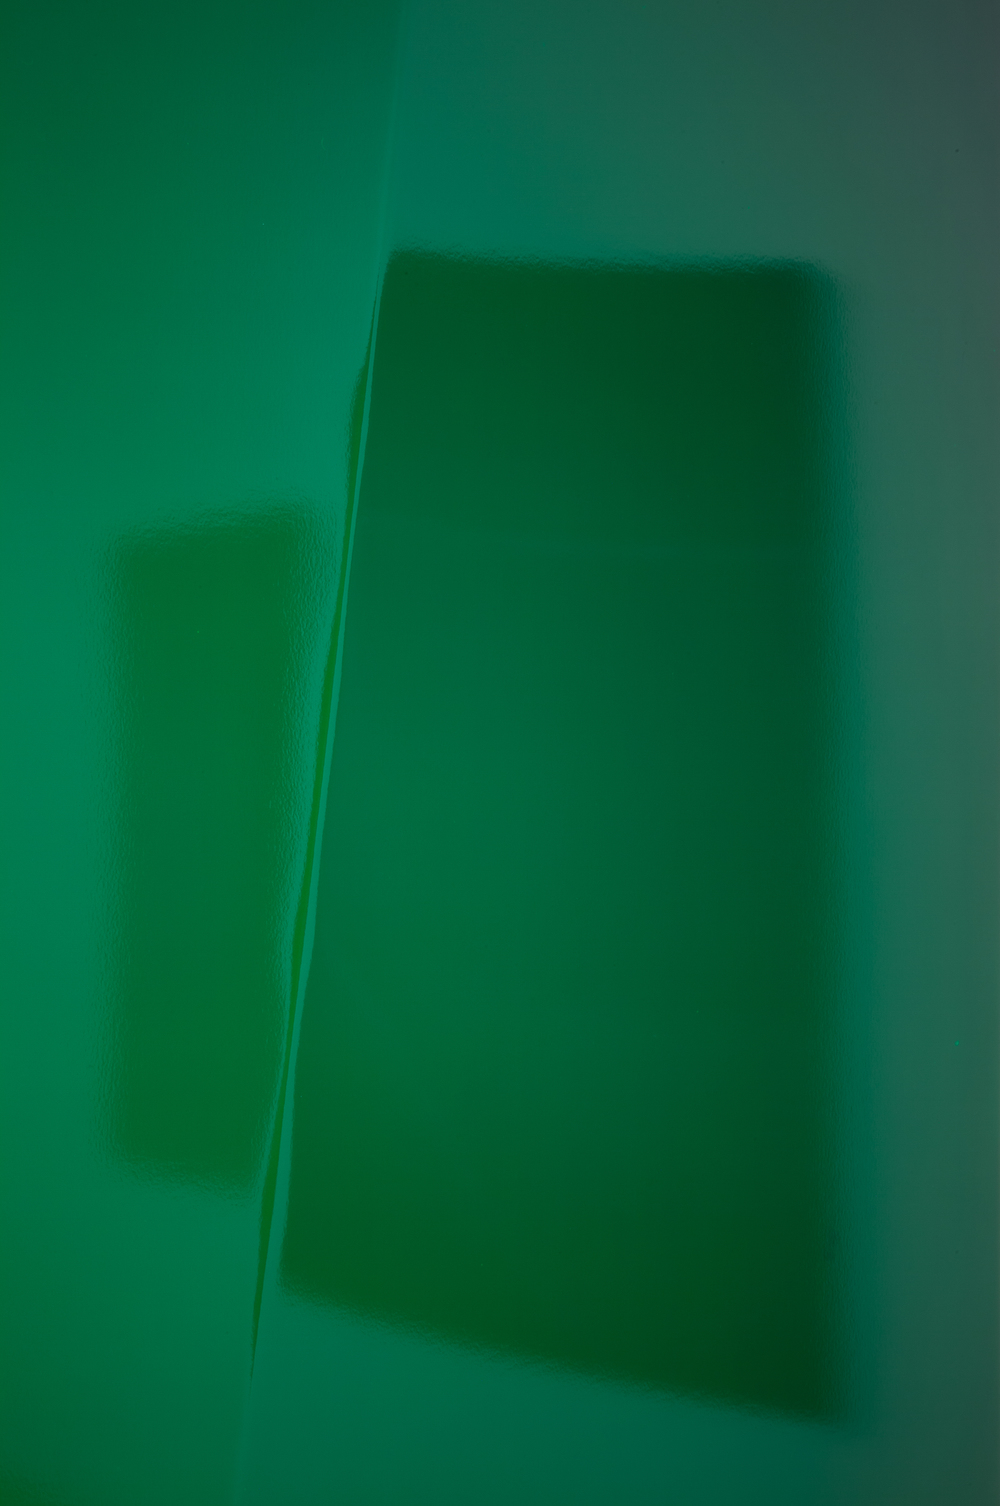 Green Bent (detail)